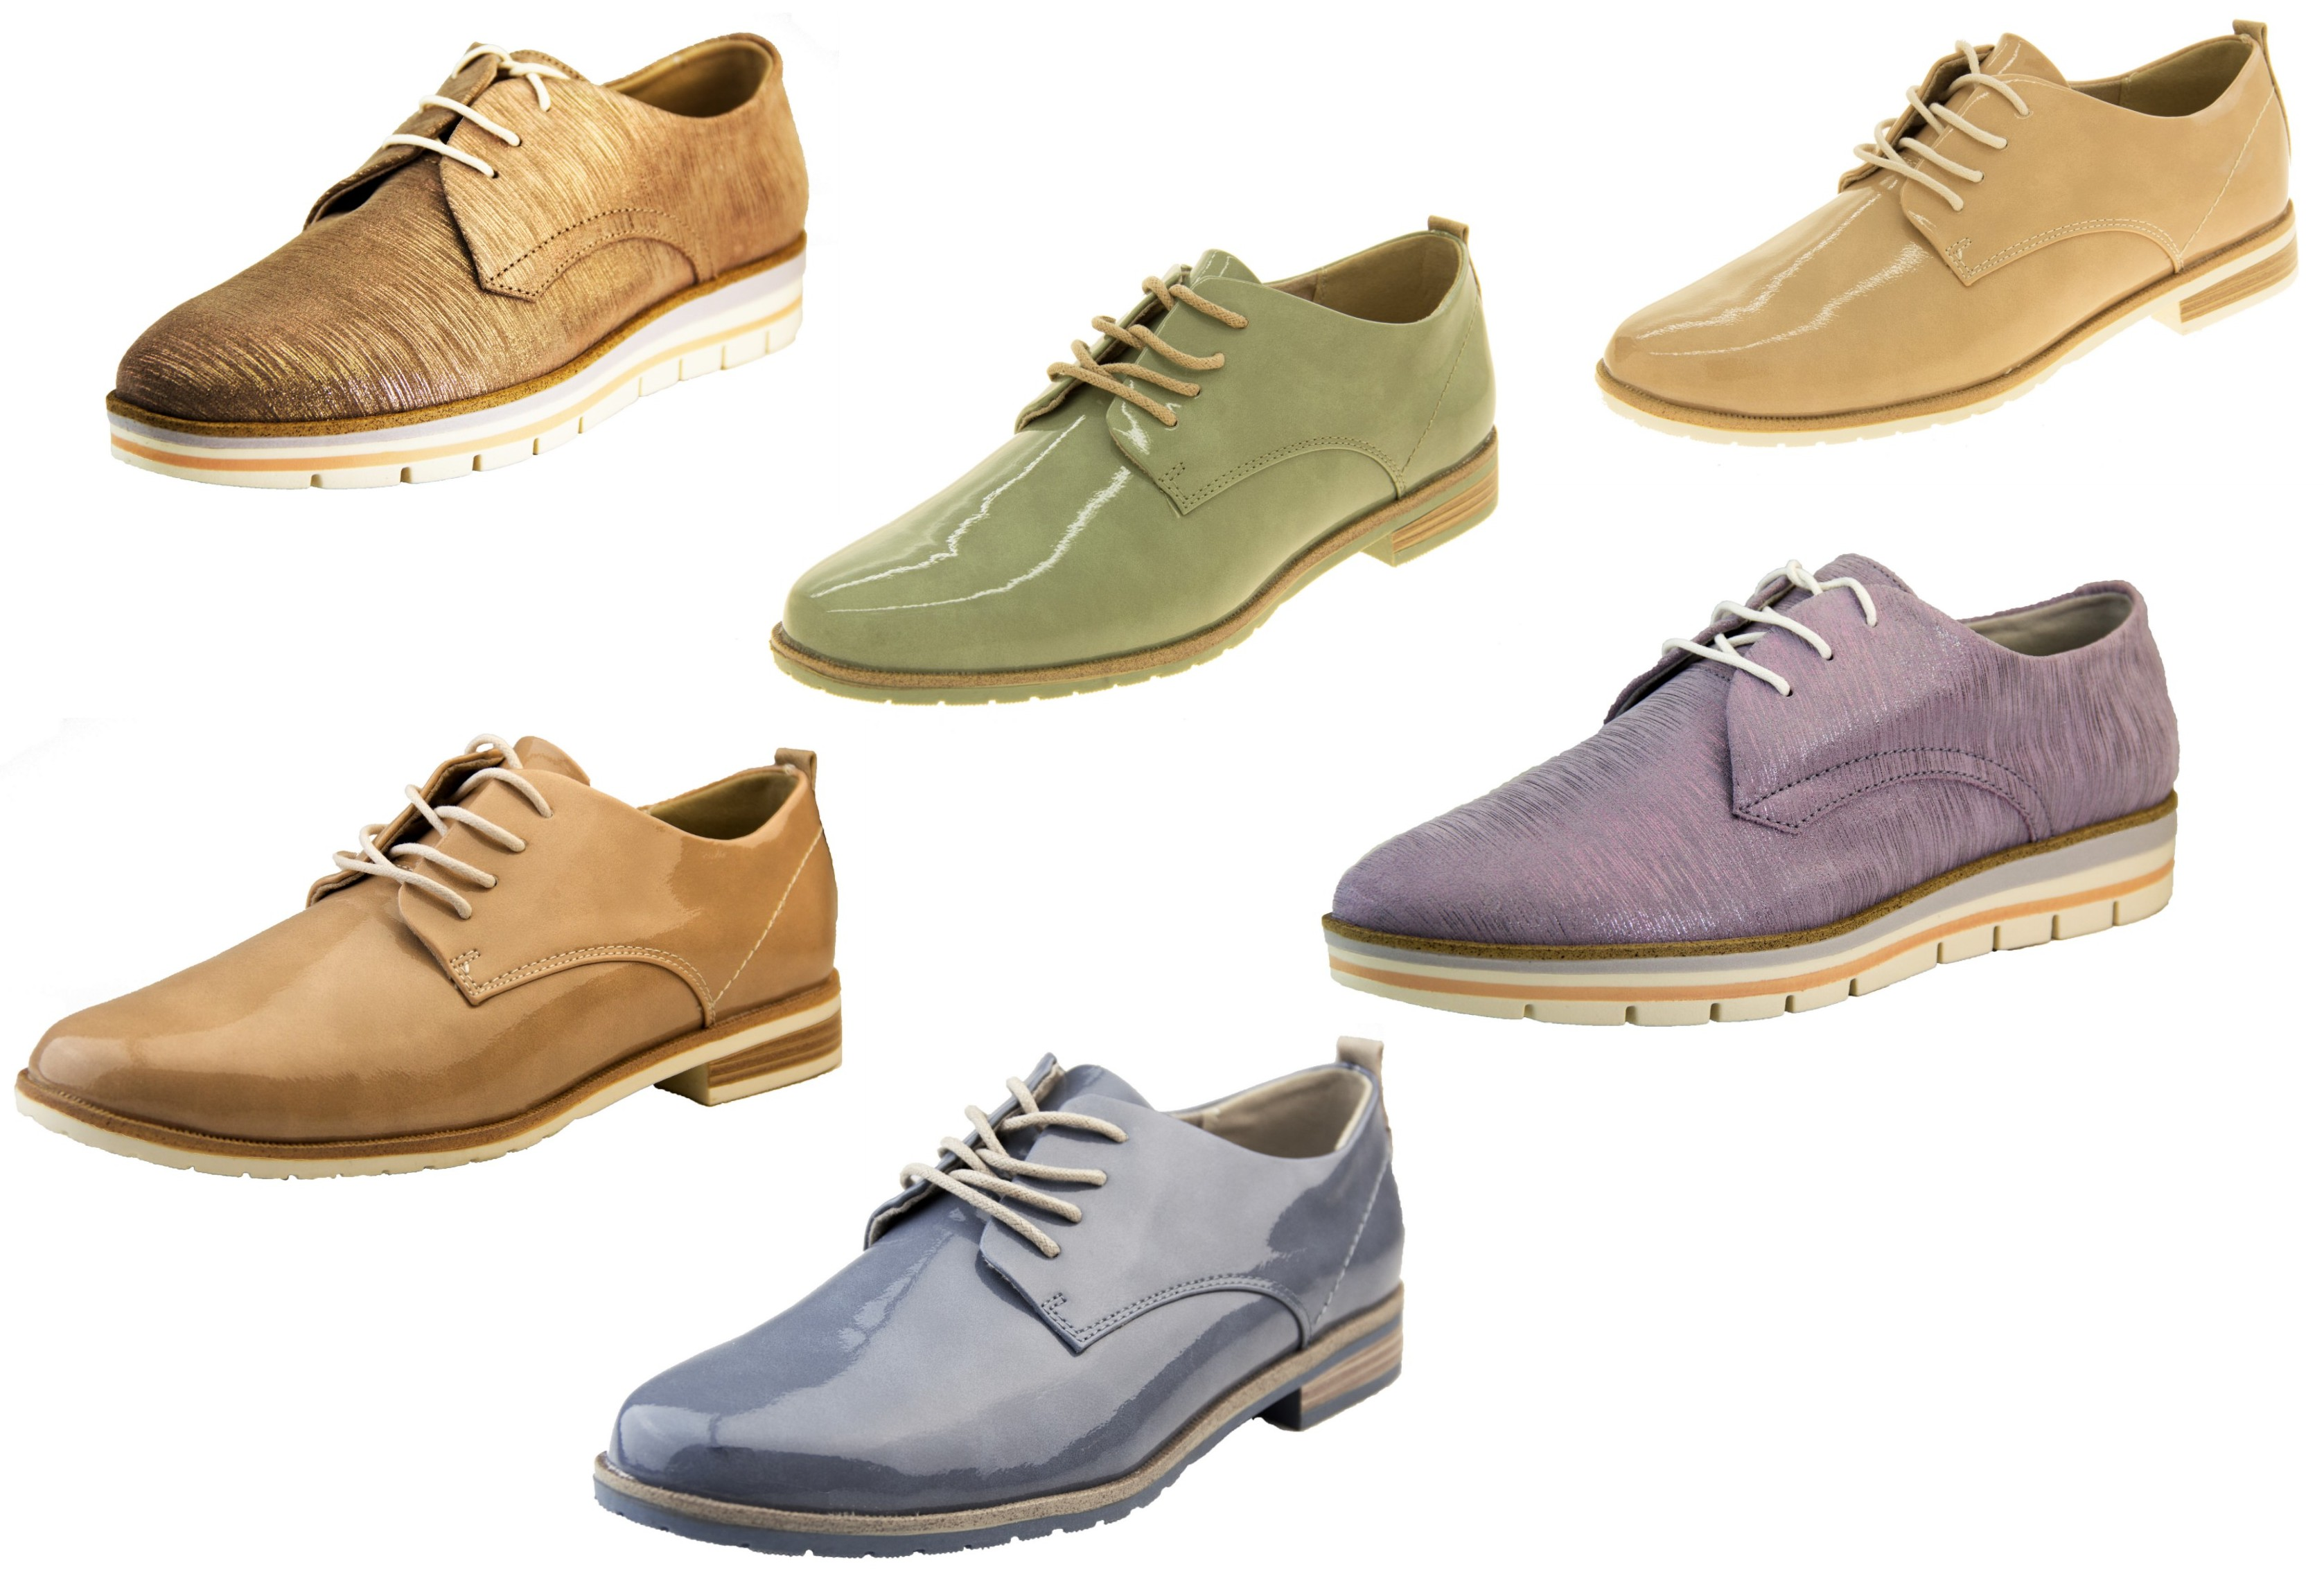 4a353099b4db Womens MARCO TOZZI Fake Leather Lace Up Summer Brogue Shoes Sizes 3 4 5 6 7